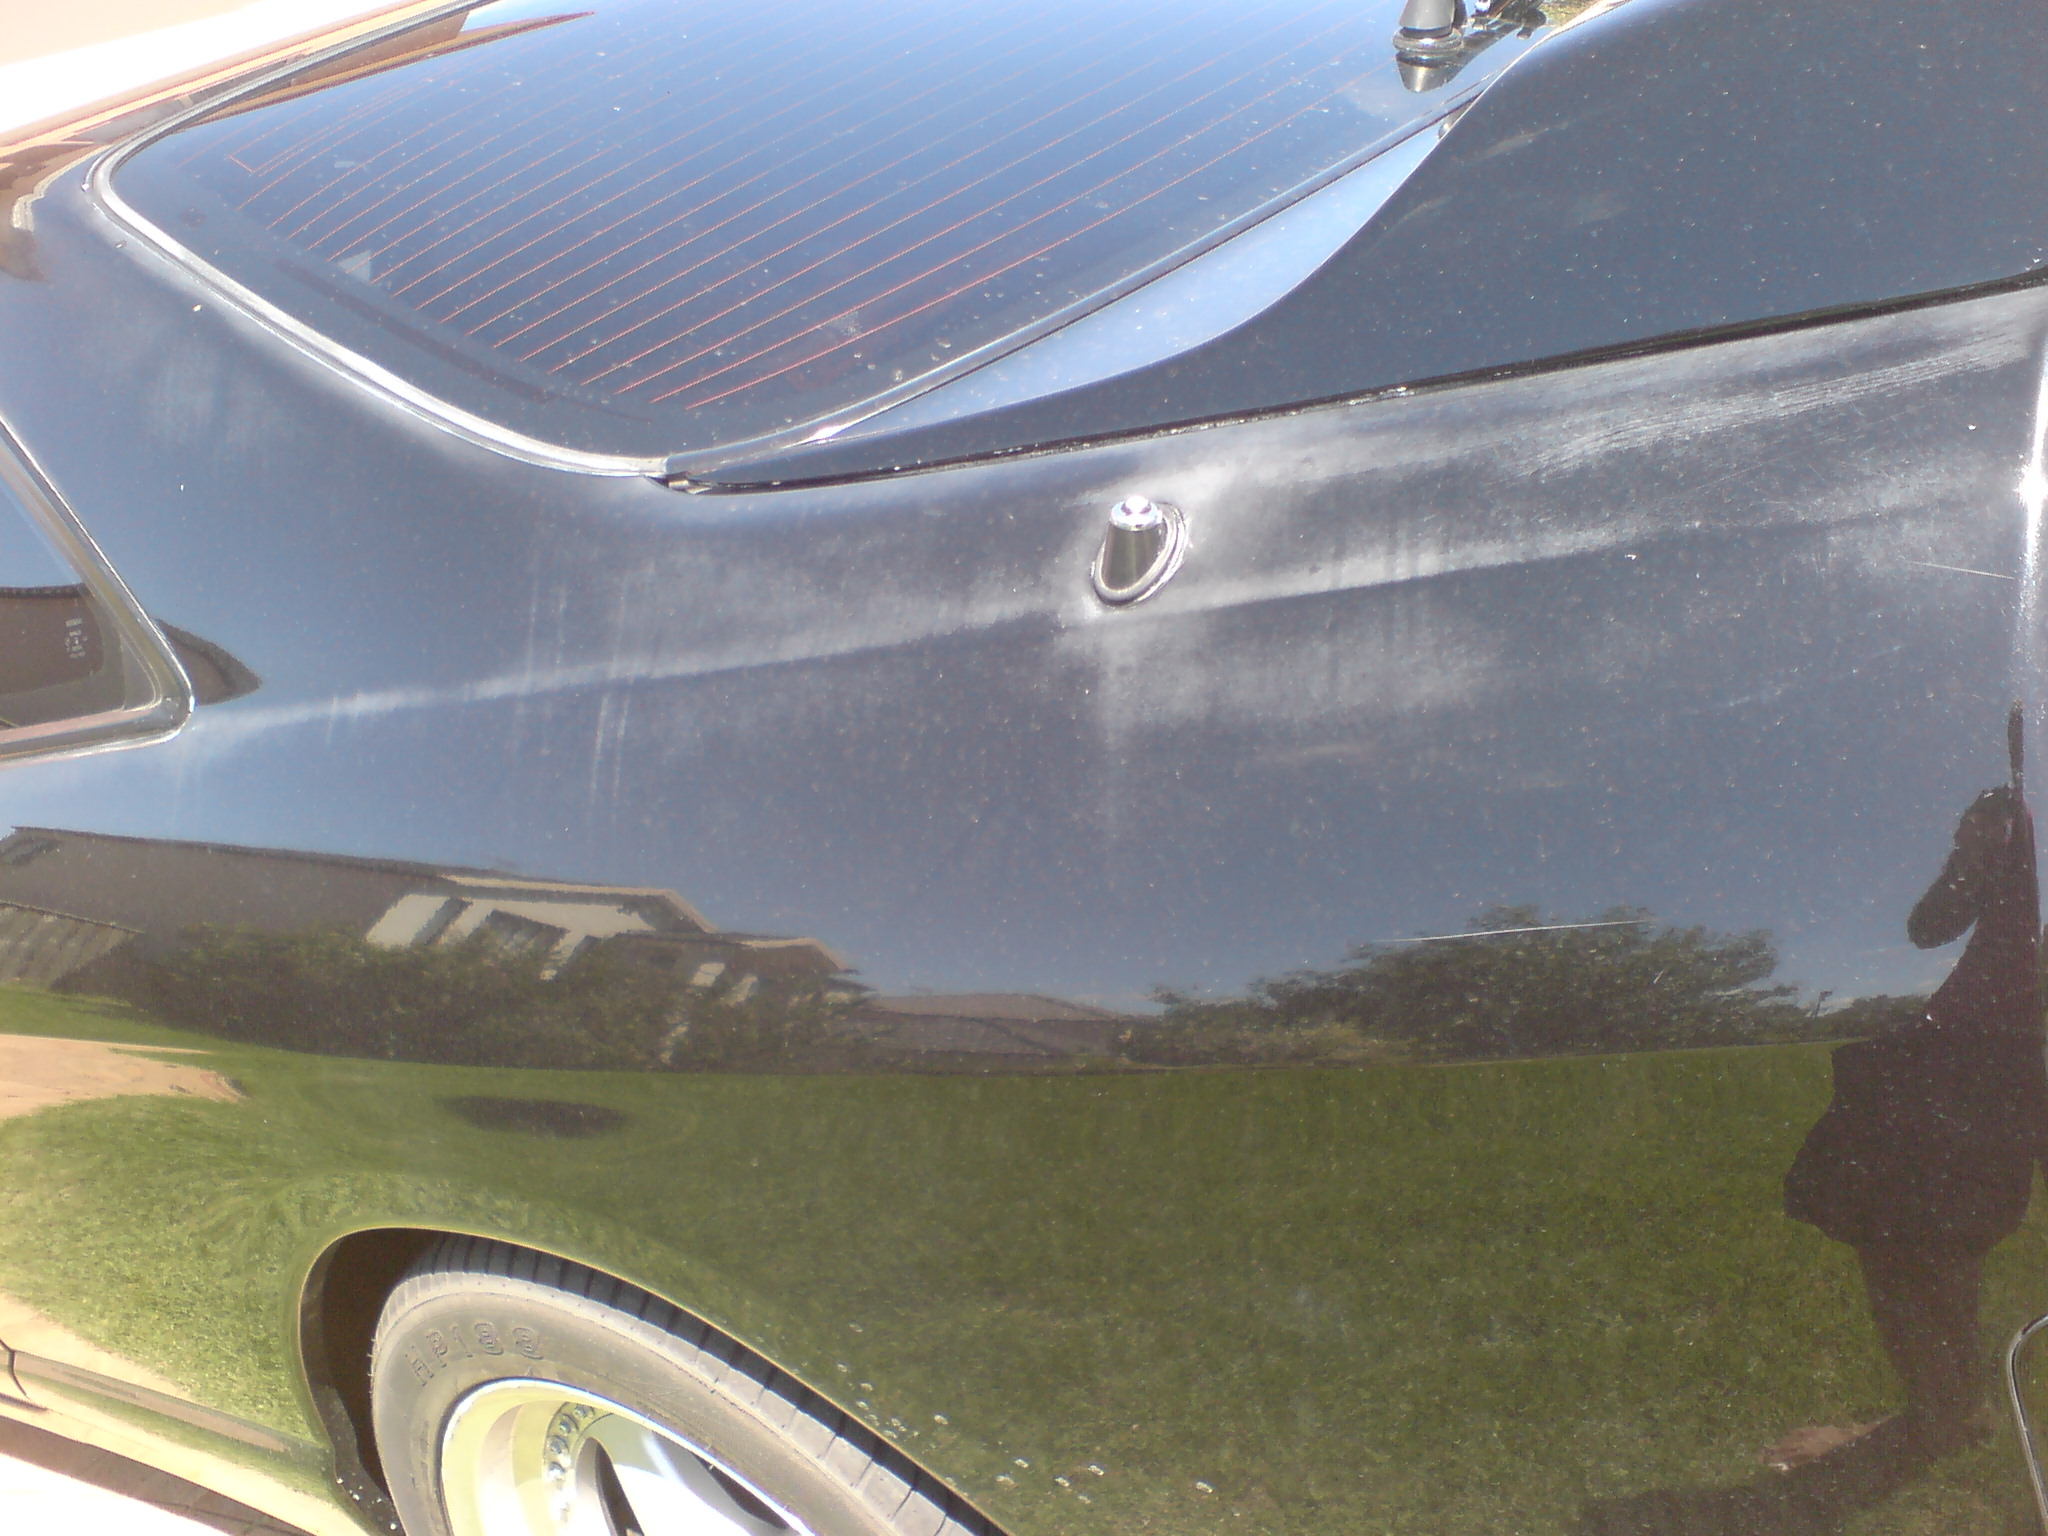 Cost To Do A Respray On My Car